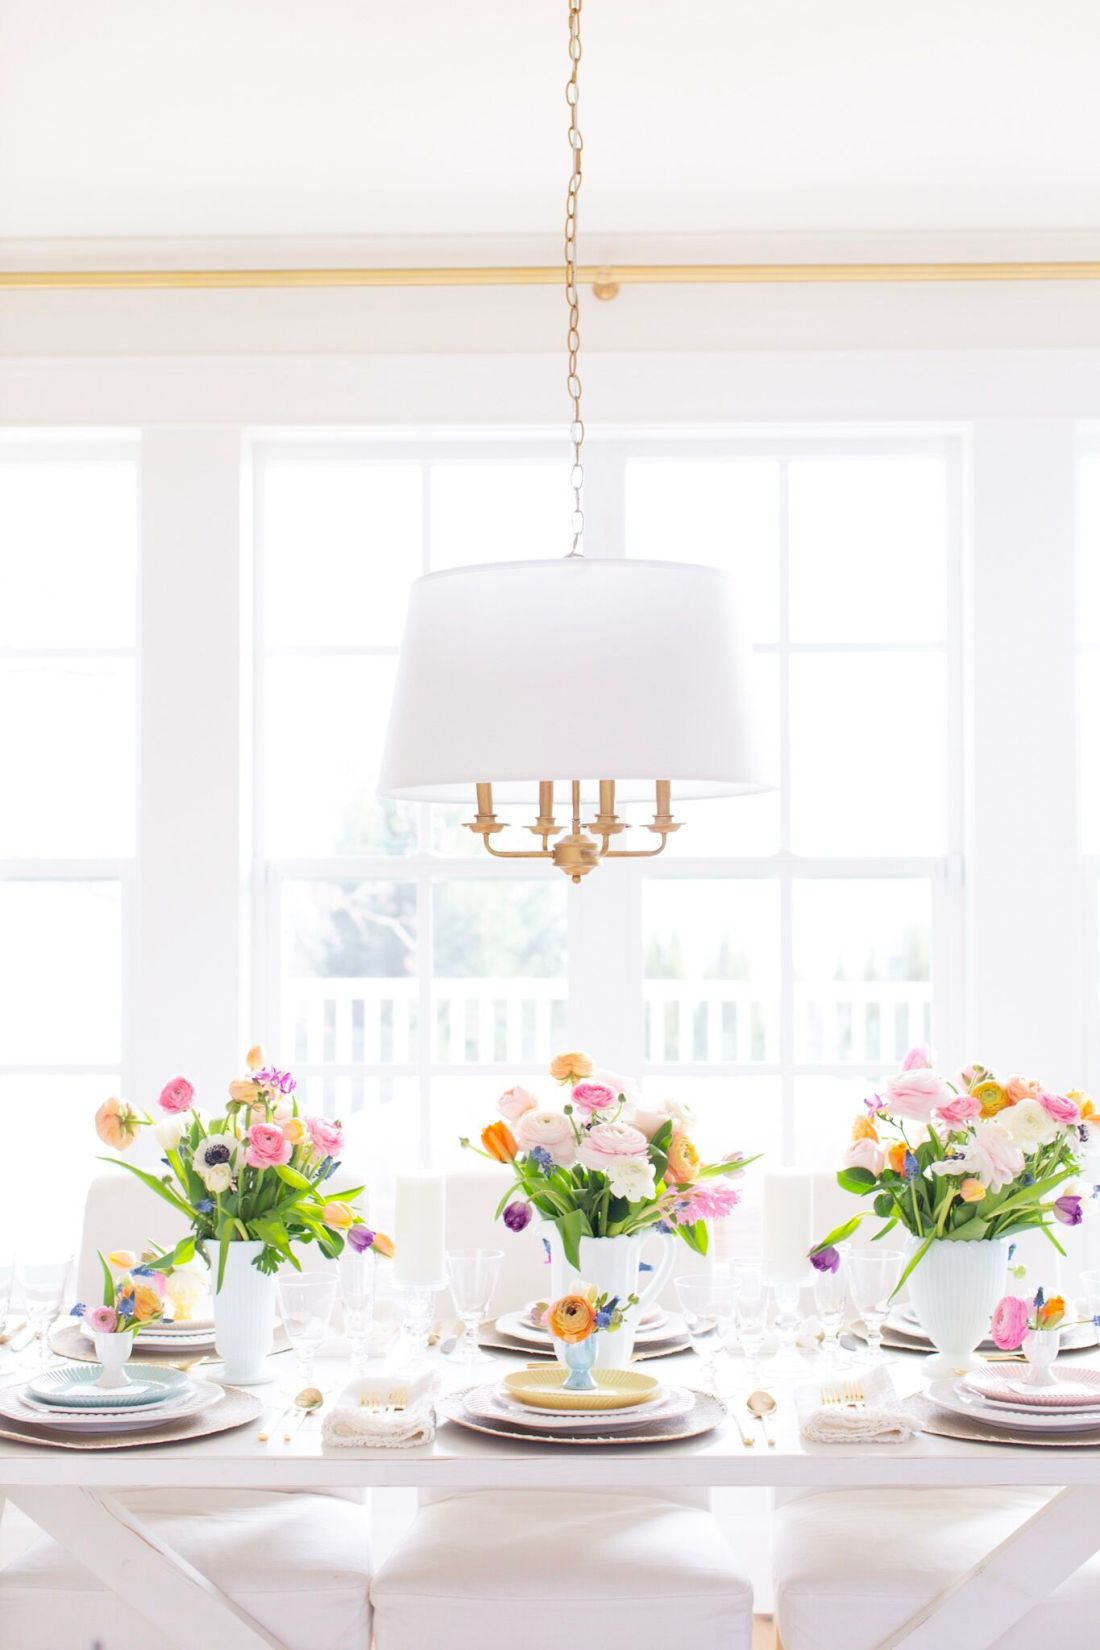 Easter Fraiche Table Dinner with pastel florals, white dinner ware and gold flatware